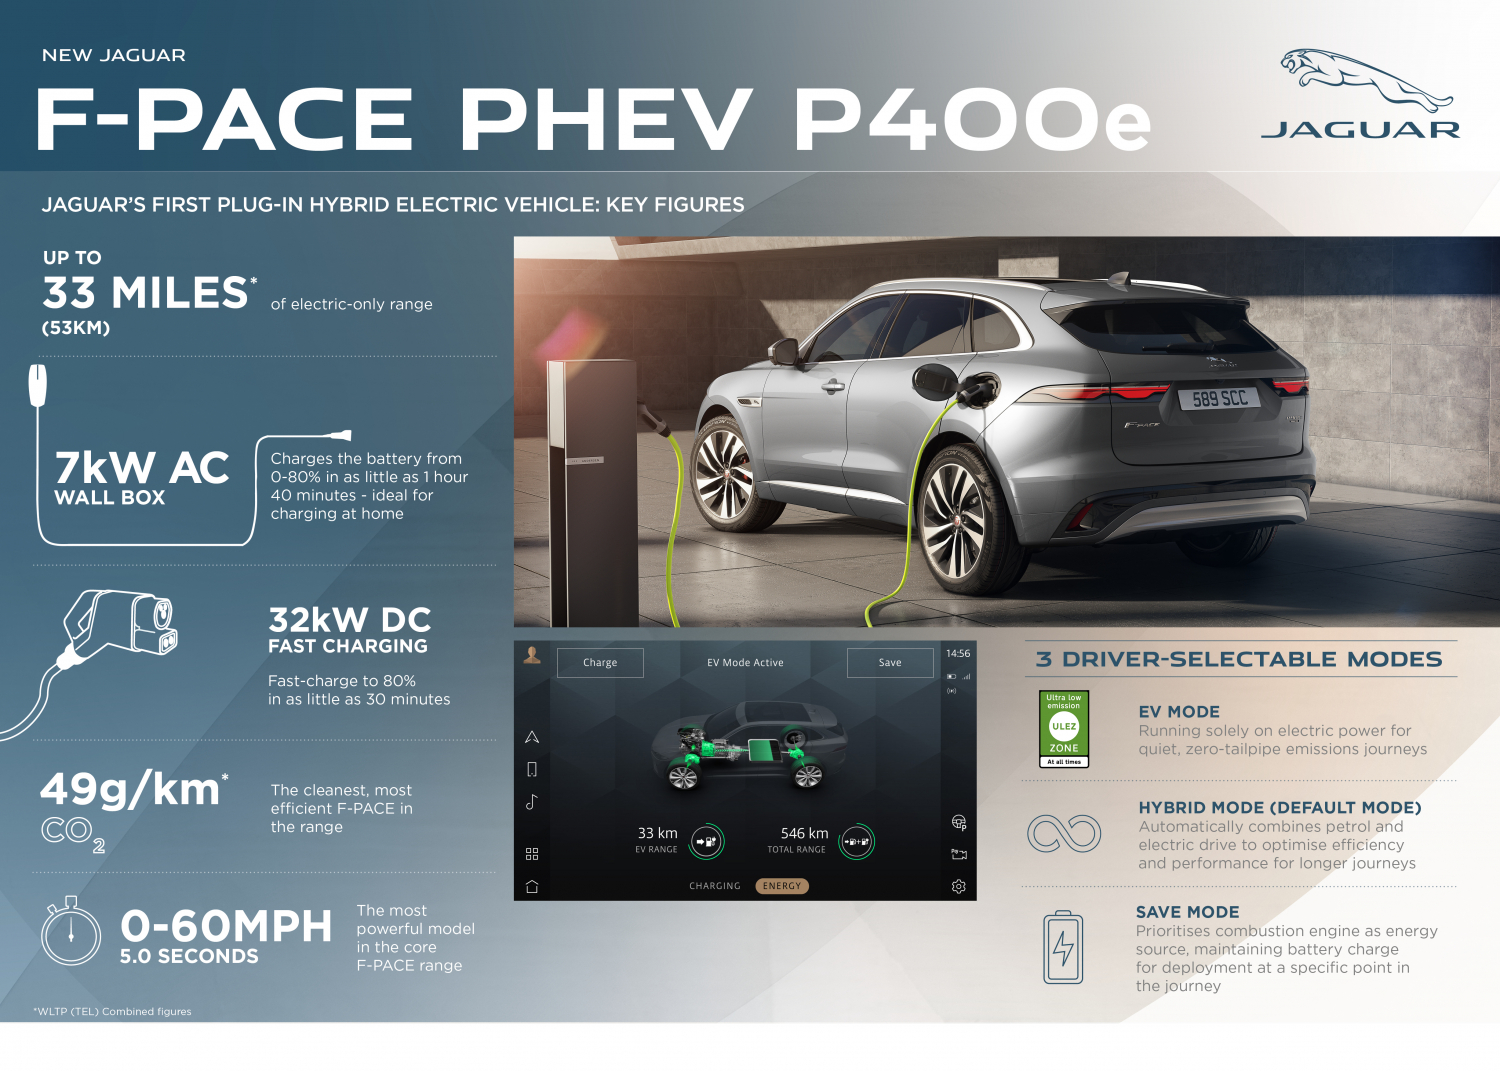 New Jaguar F-pace: Luxurious, Connected, Electrified - Image 2